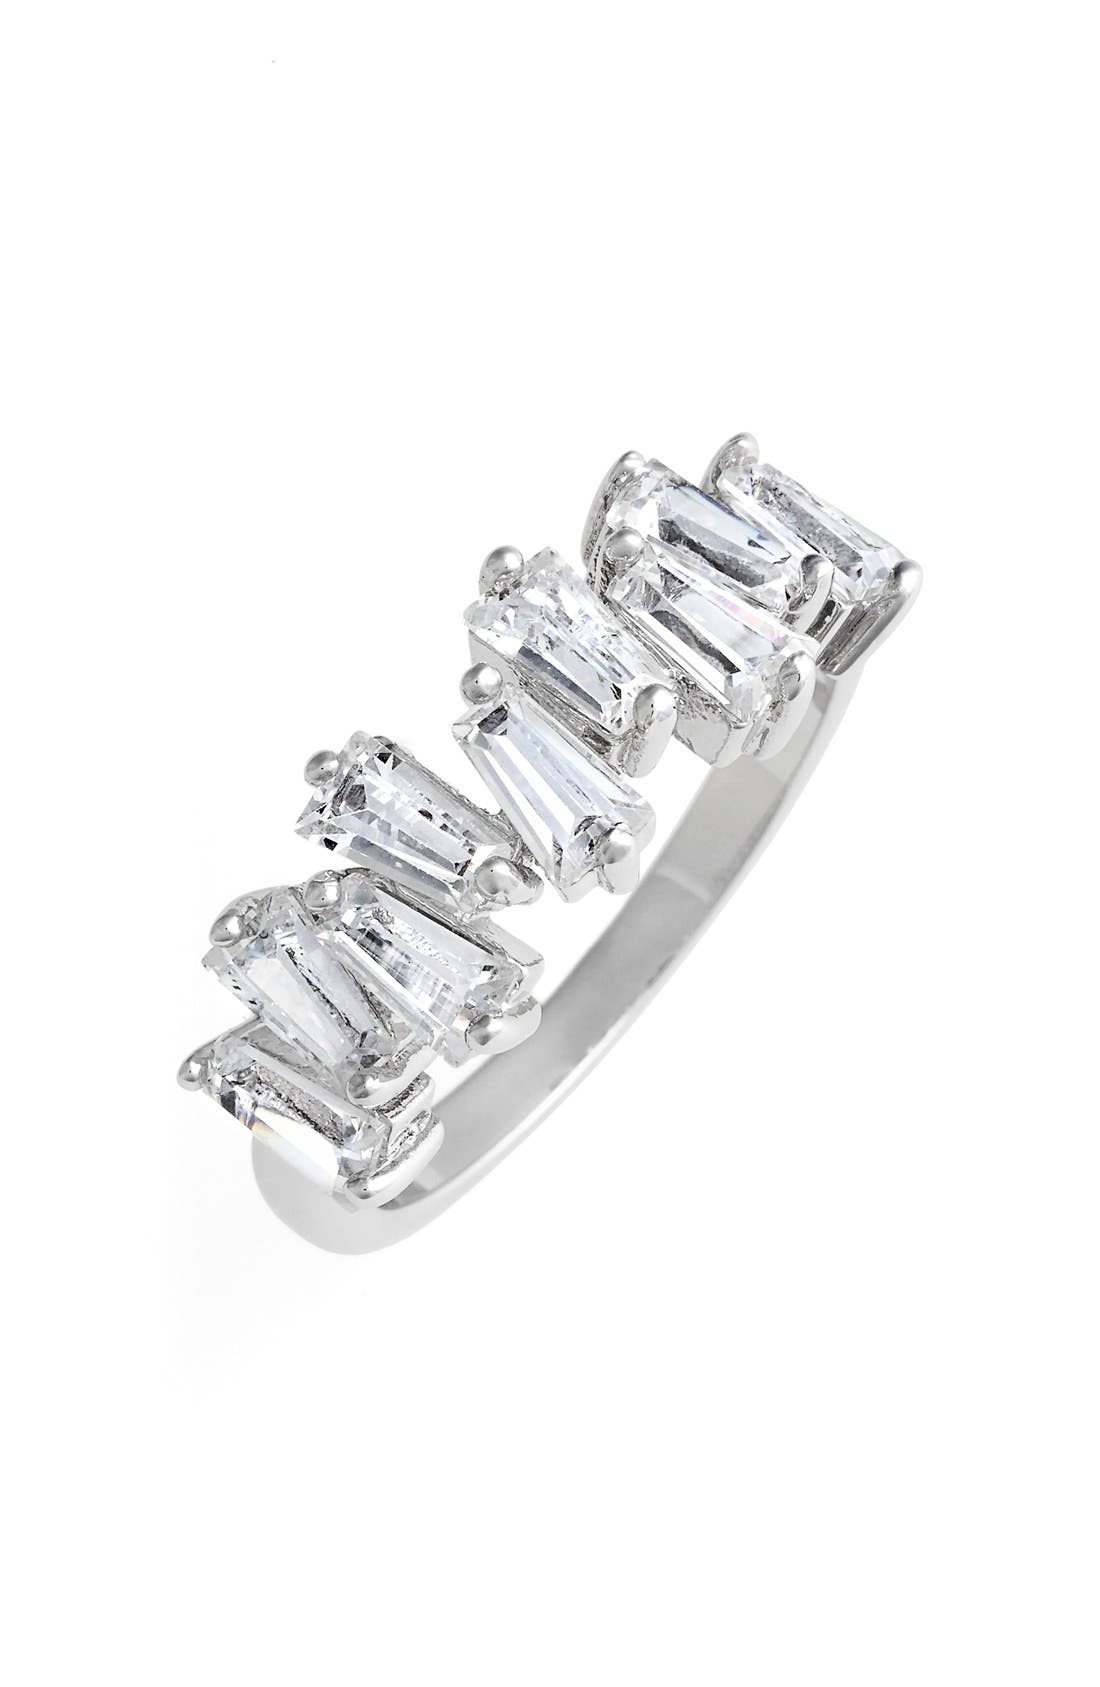 CZ BY KENNETH JAY LANE Jagged Baguette Cubic Zirconia Band Ring